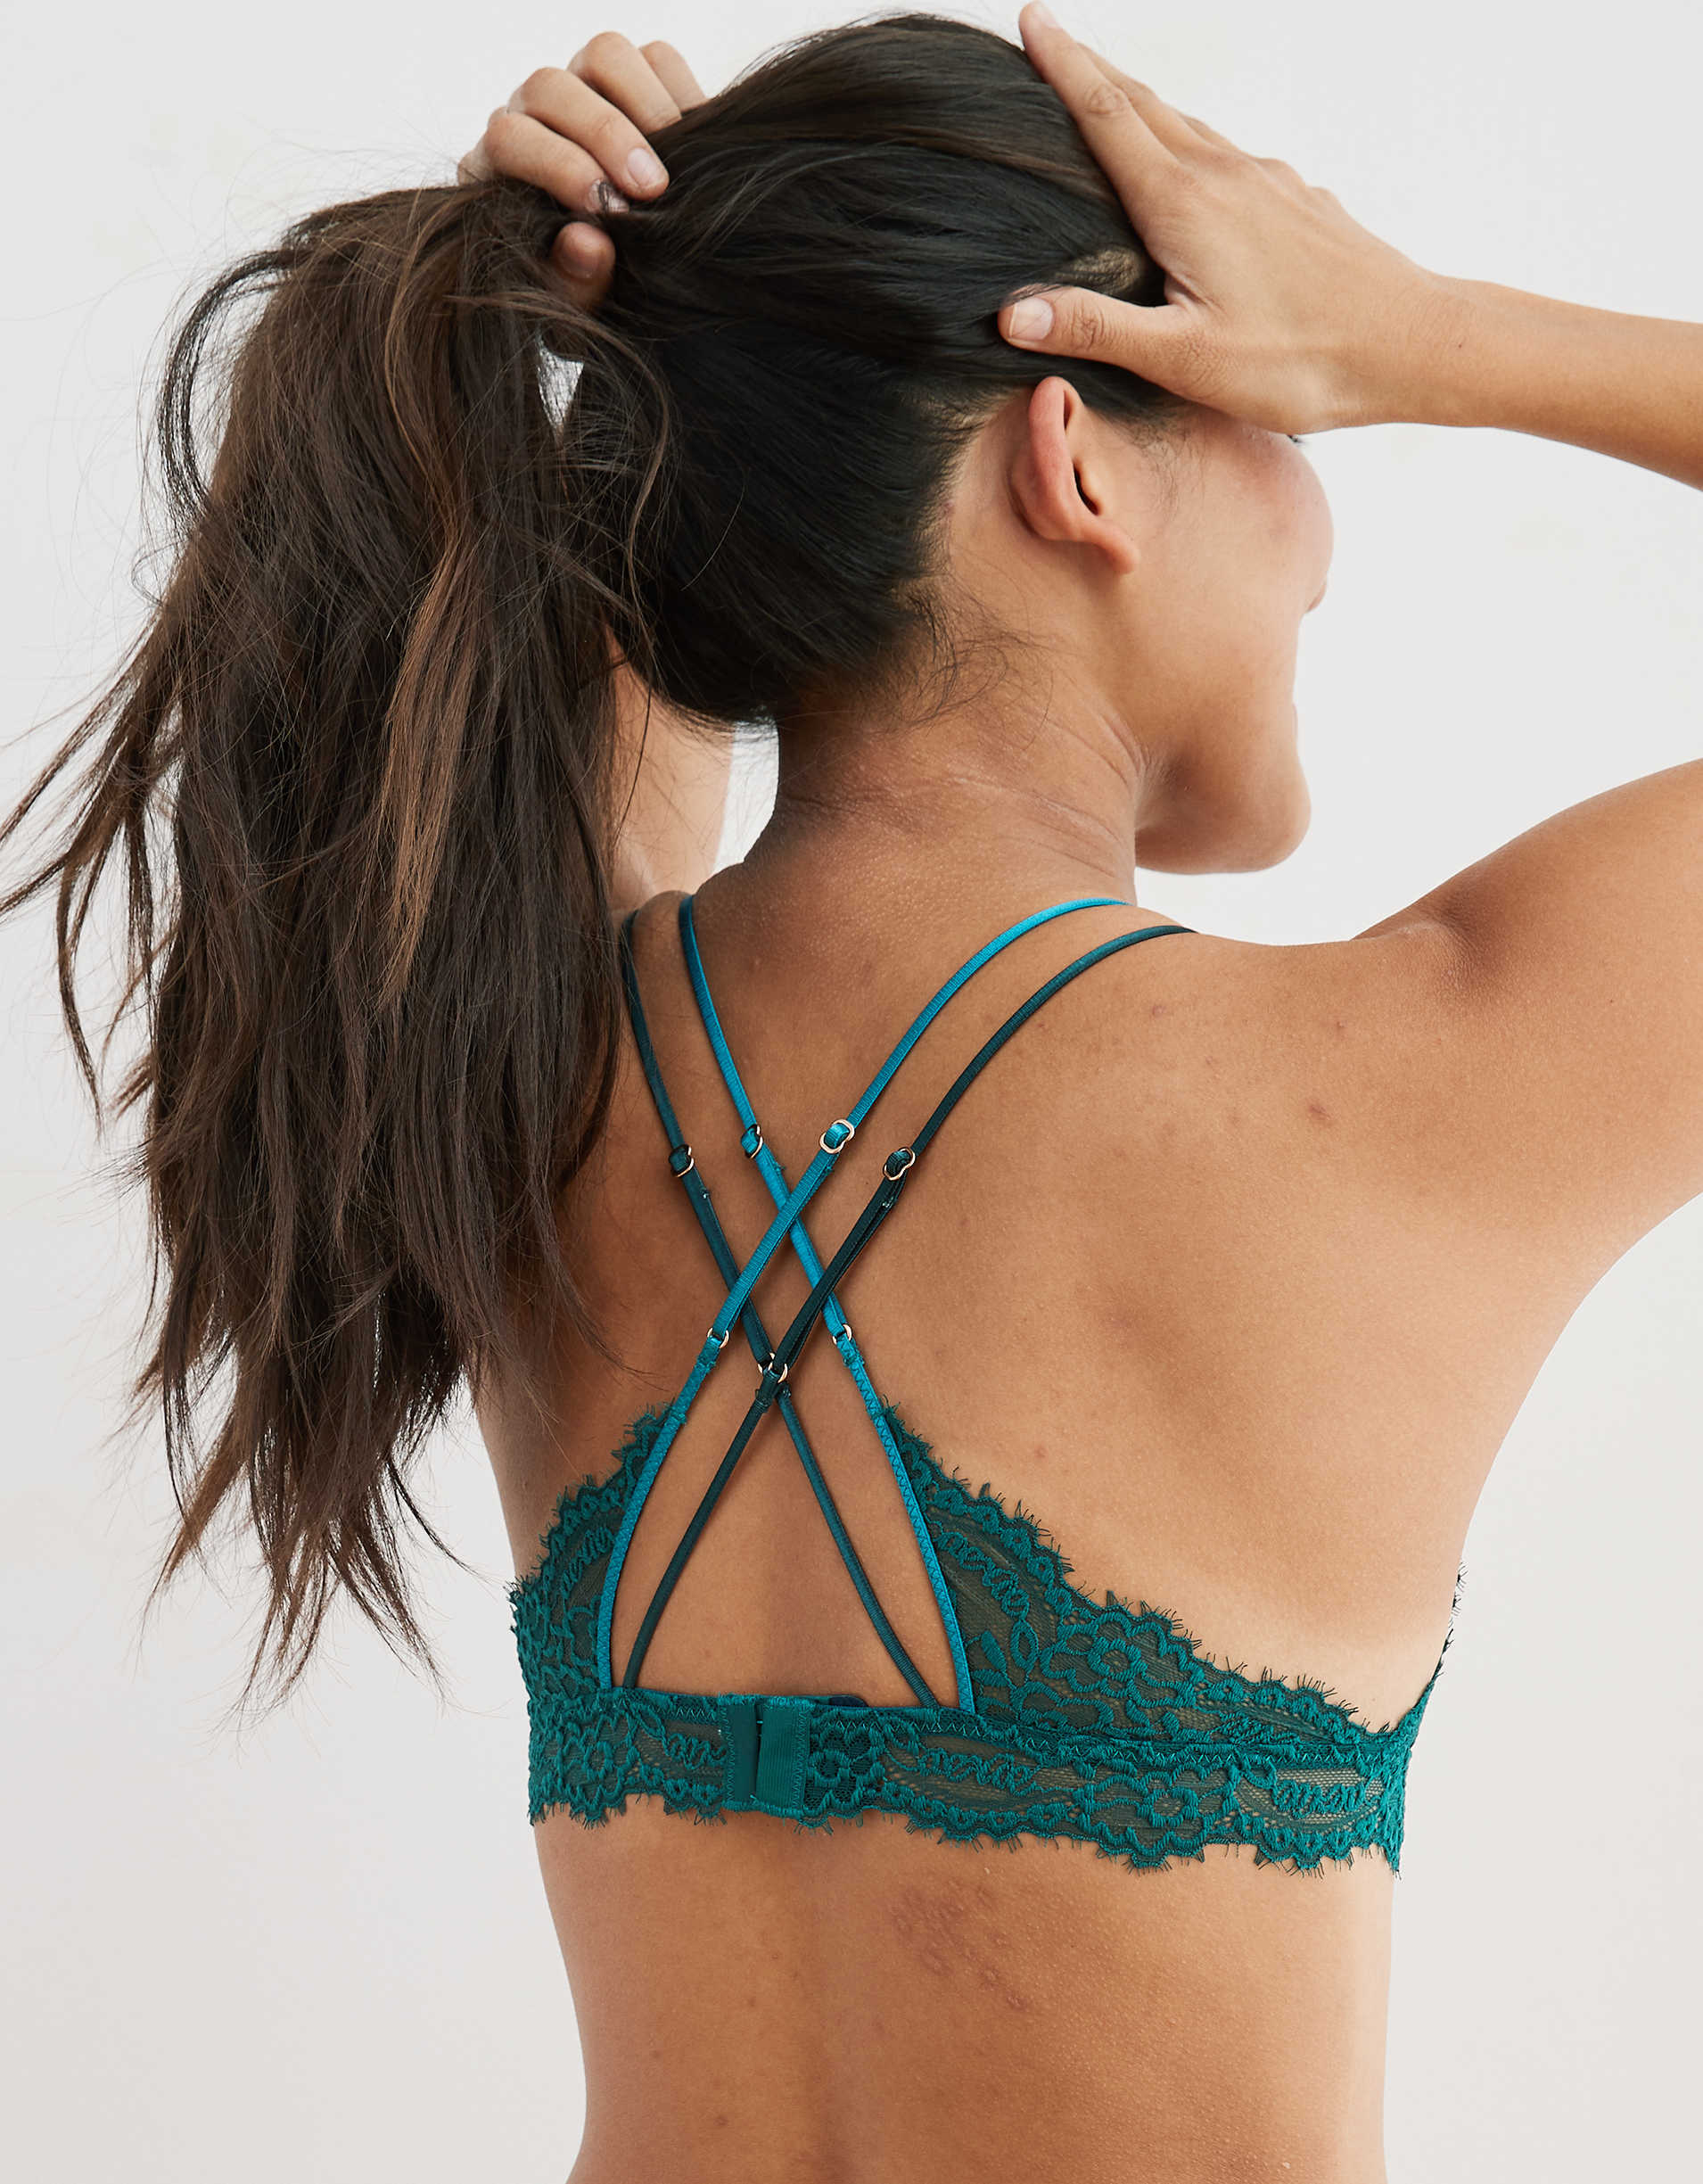 Aerie Eyelash Lace Strappy Triangle Bralette